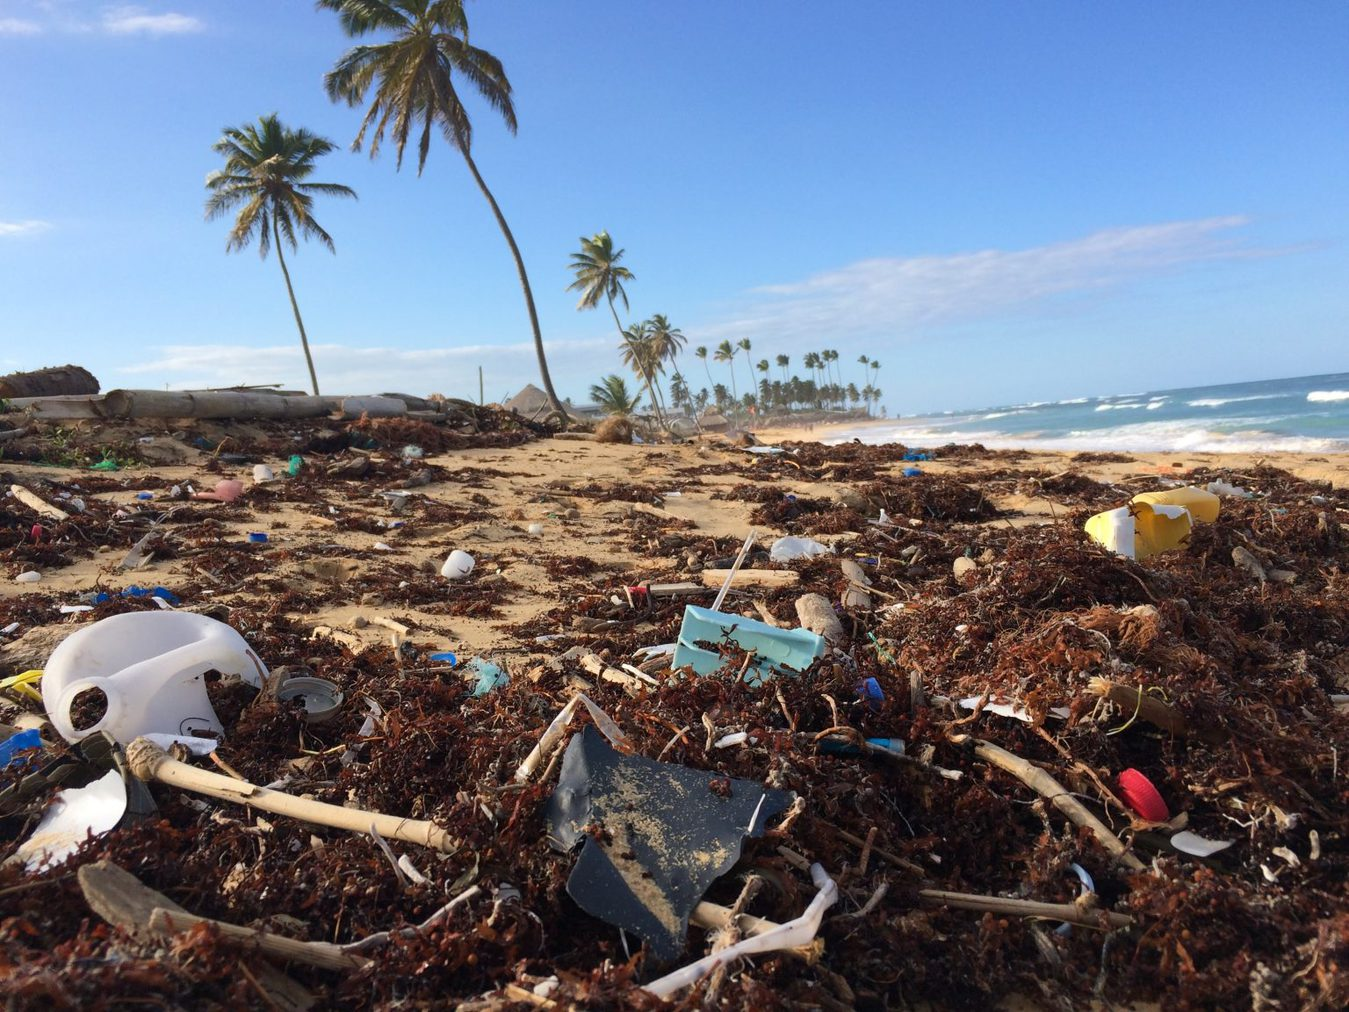 tropical beach covered in plastic garbage